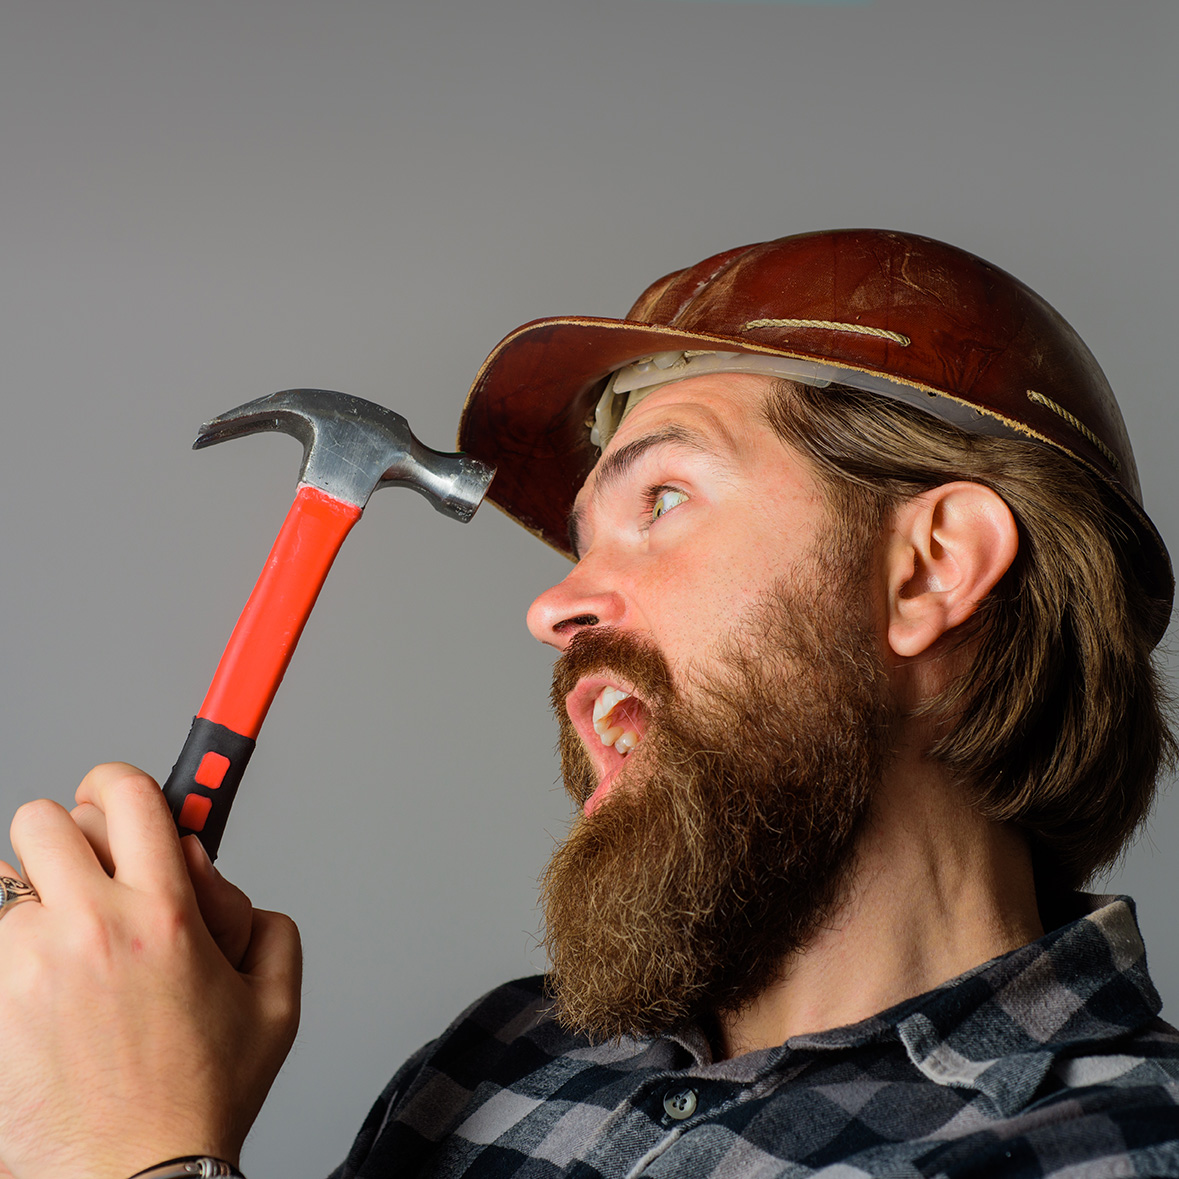 Repairment. Mechanical worker. Worker with hammer. Builder in hardhat. Portrait of bearded workman. Building, industry, technology. Builder in hard hat. Advertise